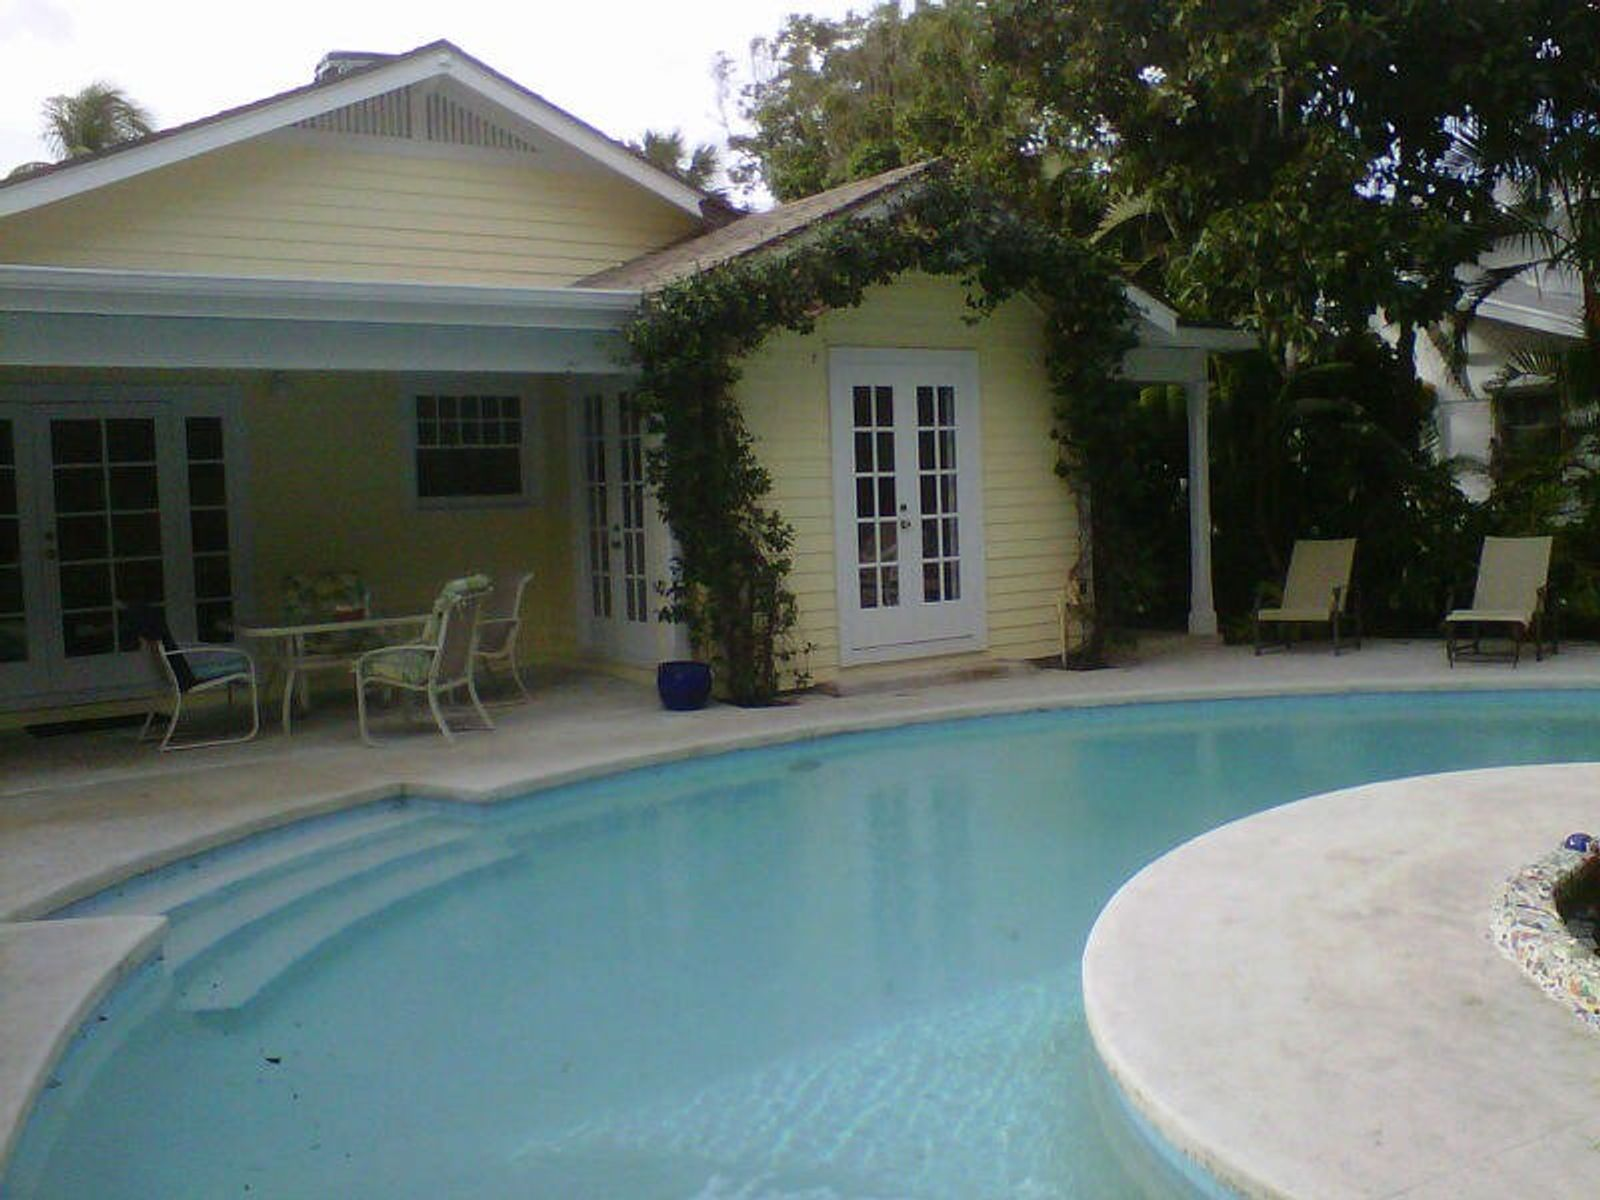 Charming Florida Style Beach House, Palm Beach FL Single Family Home - Palm Beach Real Estate